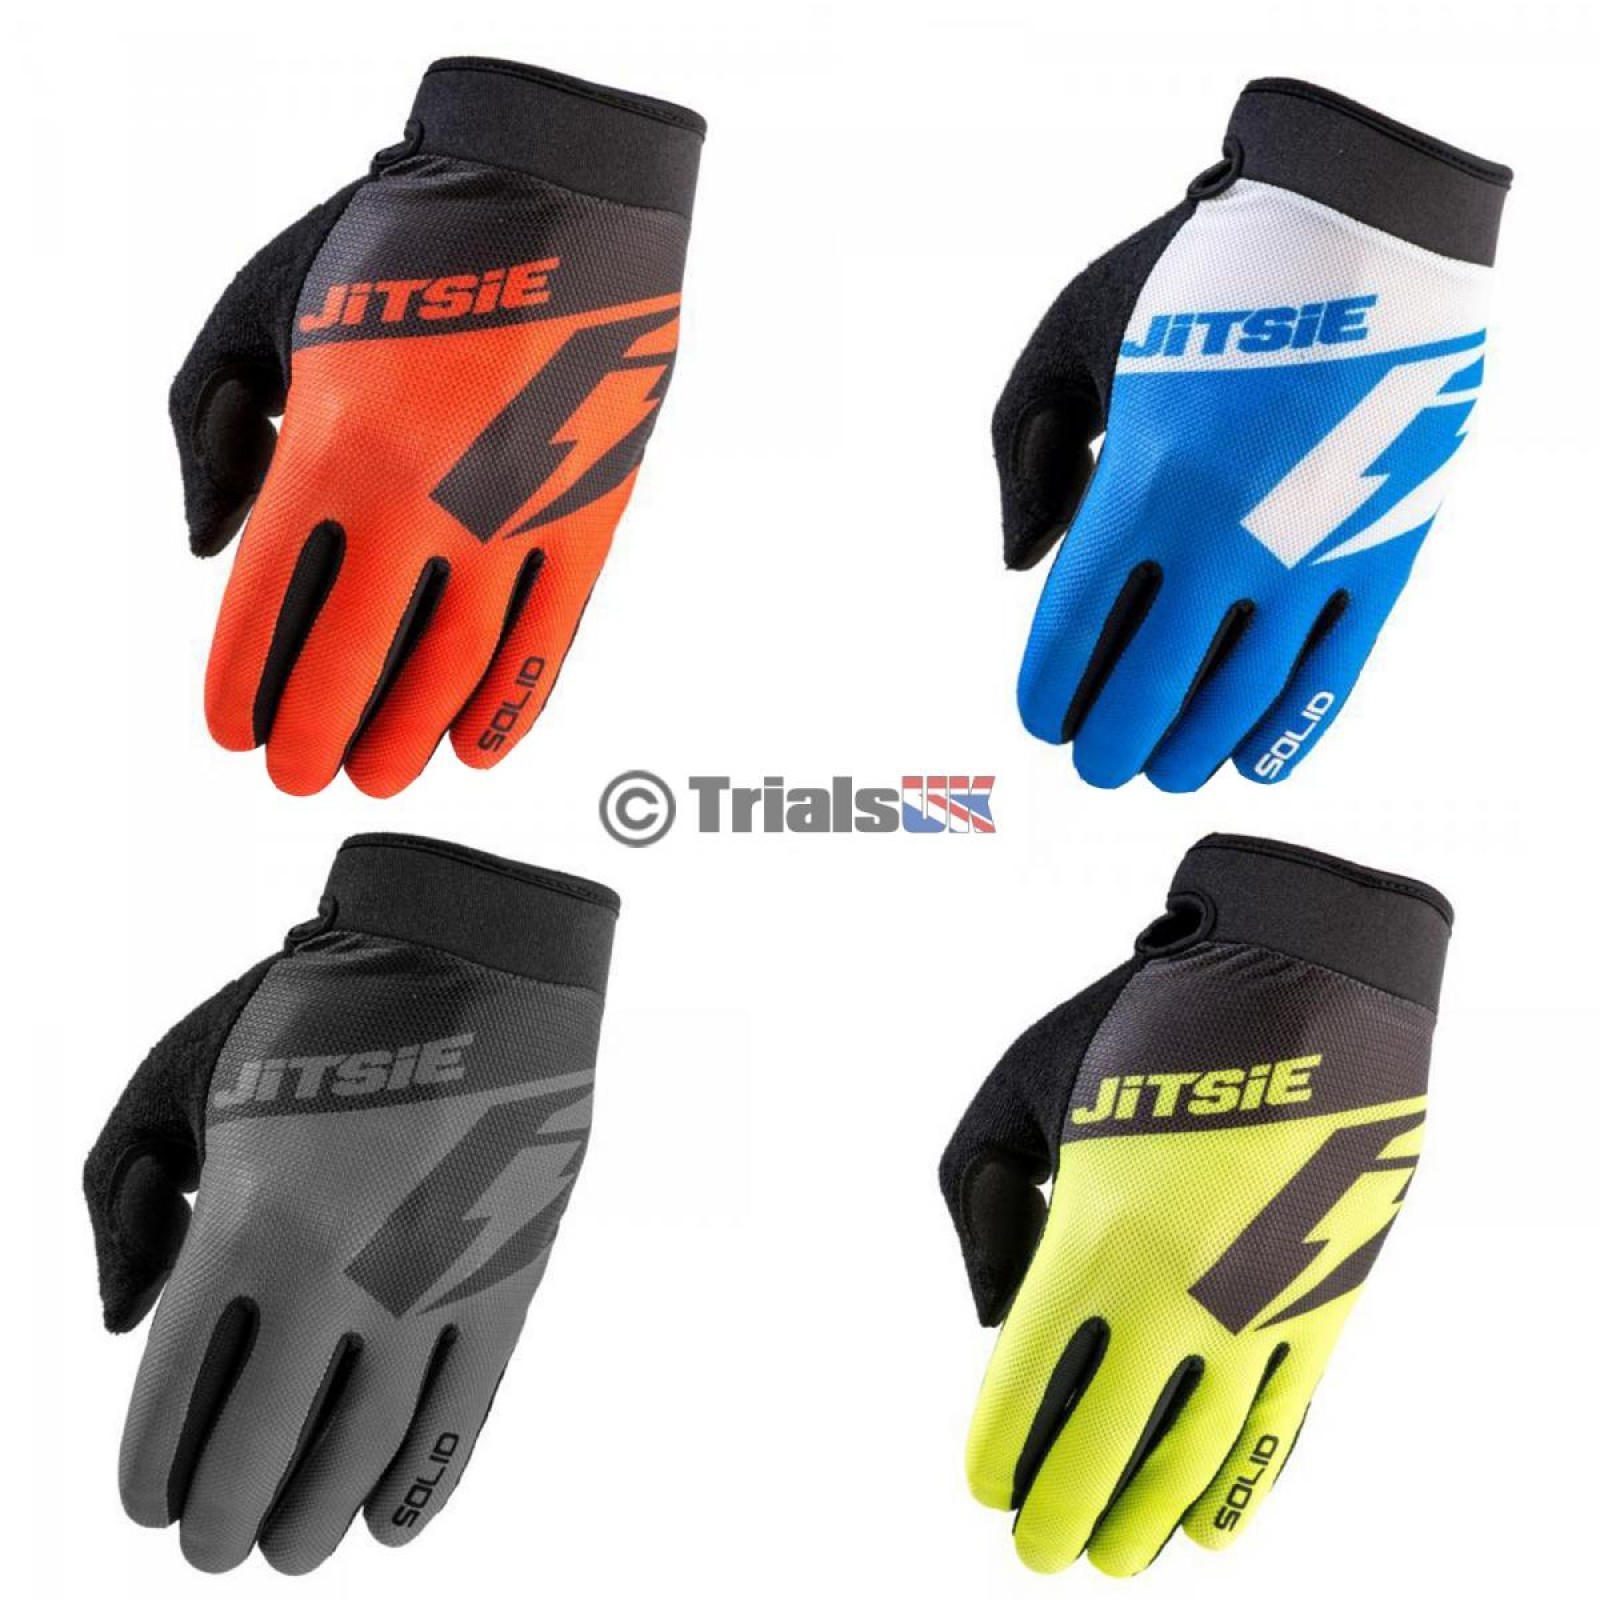 Jitsie G2 SOLID Adult Trials Riding Glove Available in 4 Colours